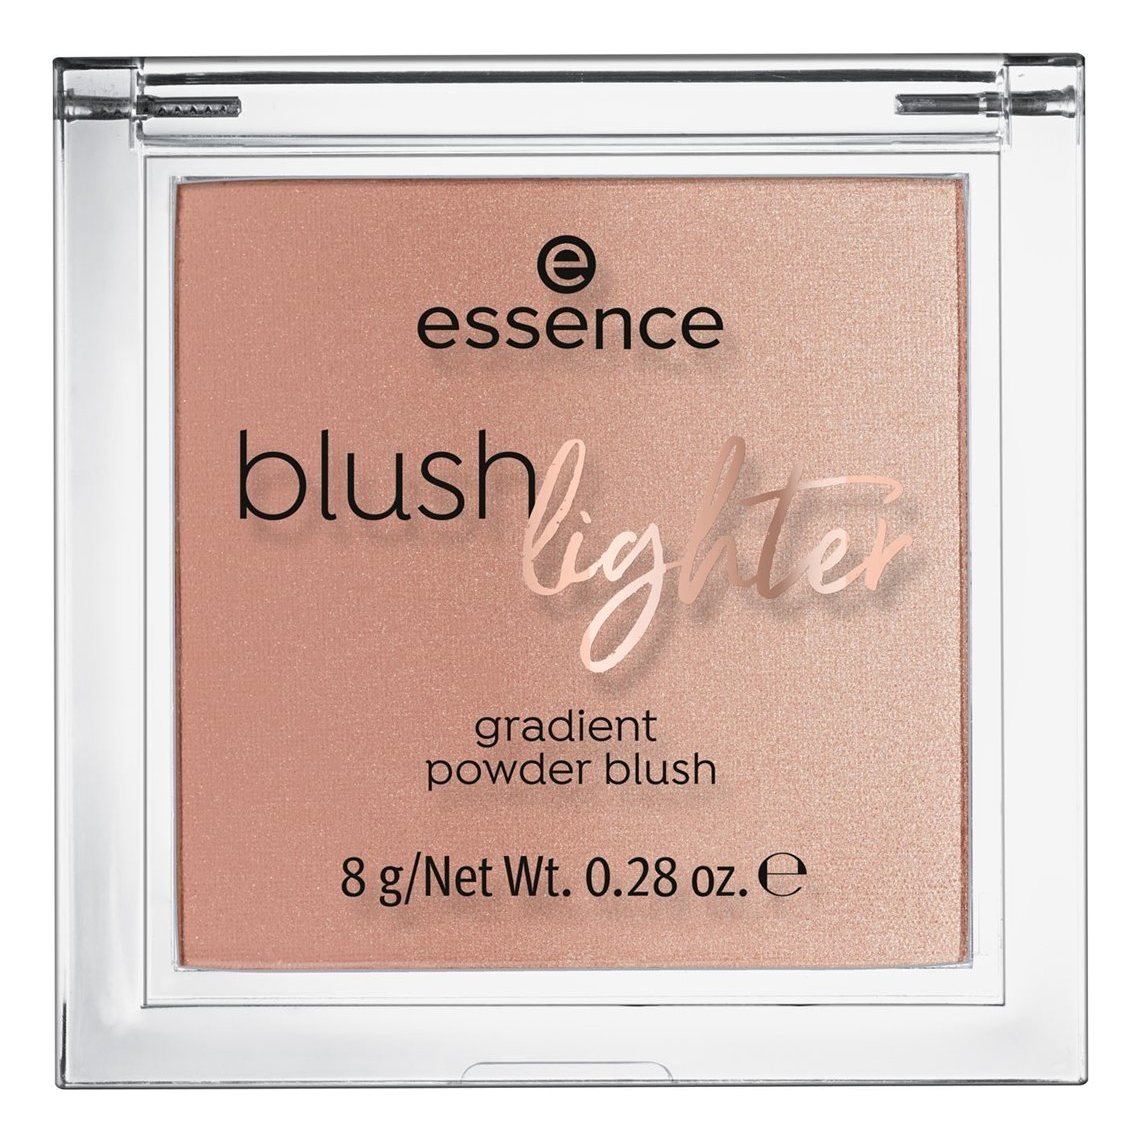 Румяна-хайлайтер для лица Blush Lighter 8г: 01 Nude Twilight румяна idyllic soft satin blush 8г no 38